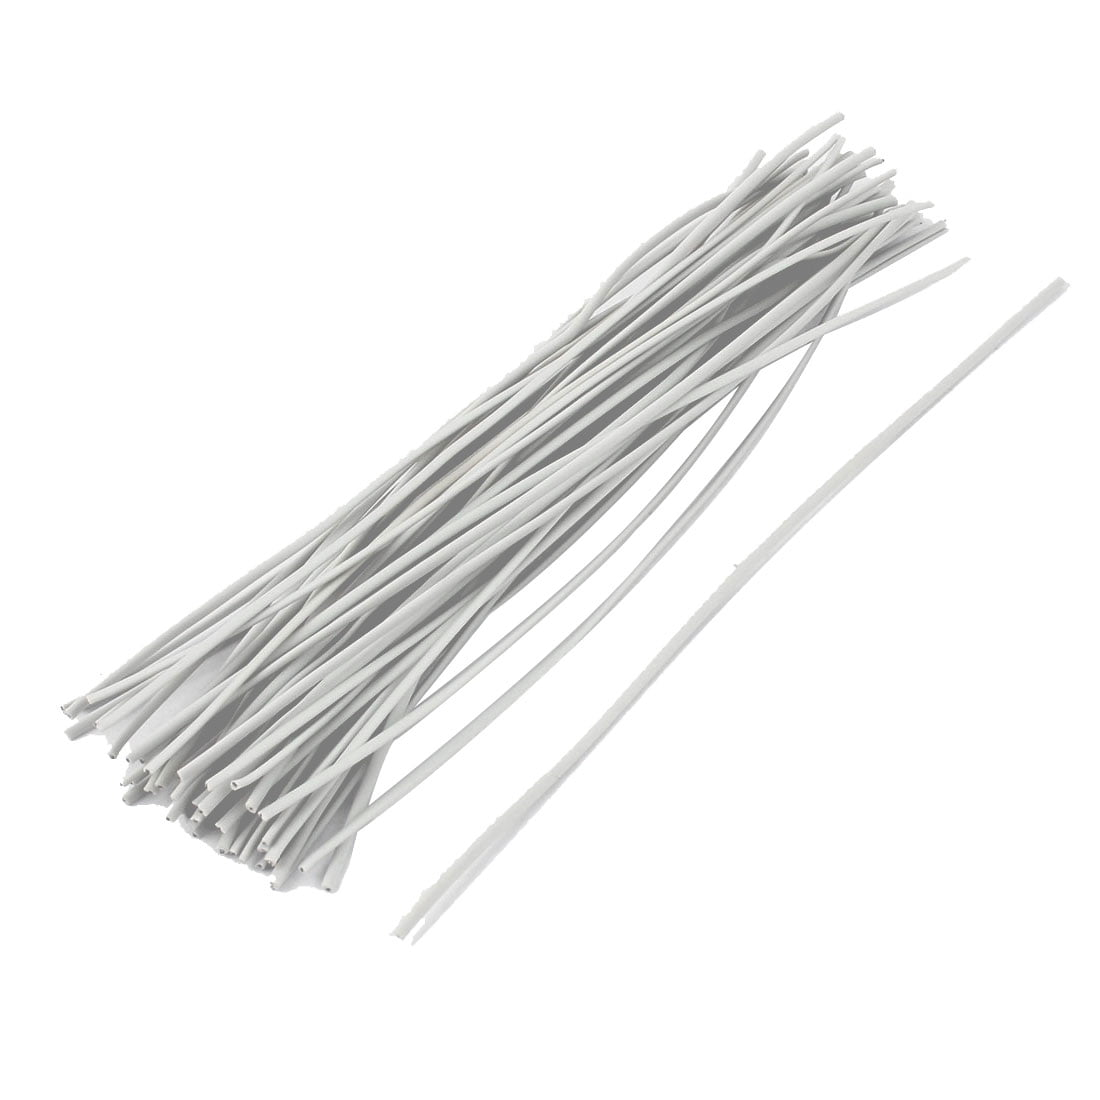 50pcs Package Reusable Twist Tie Candy Bag Ties 150mm Long White